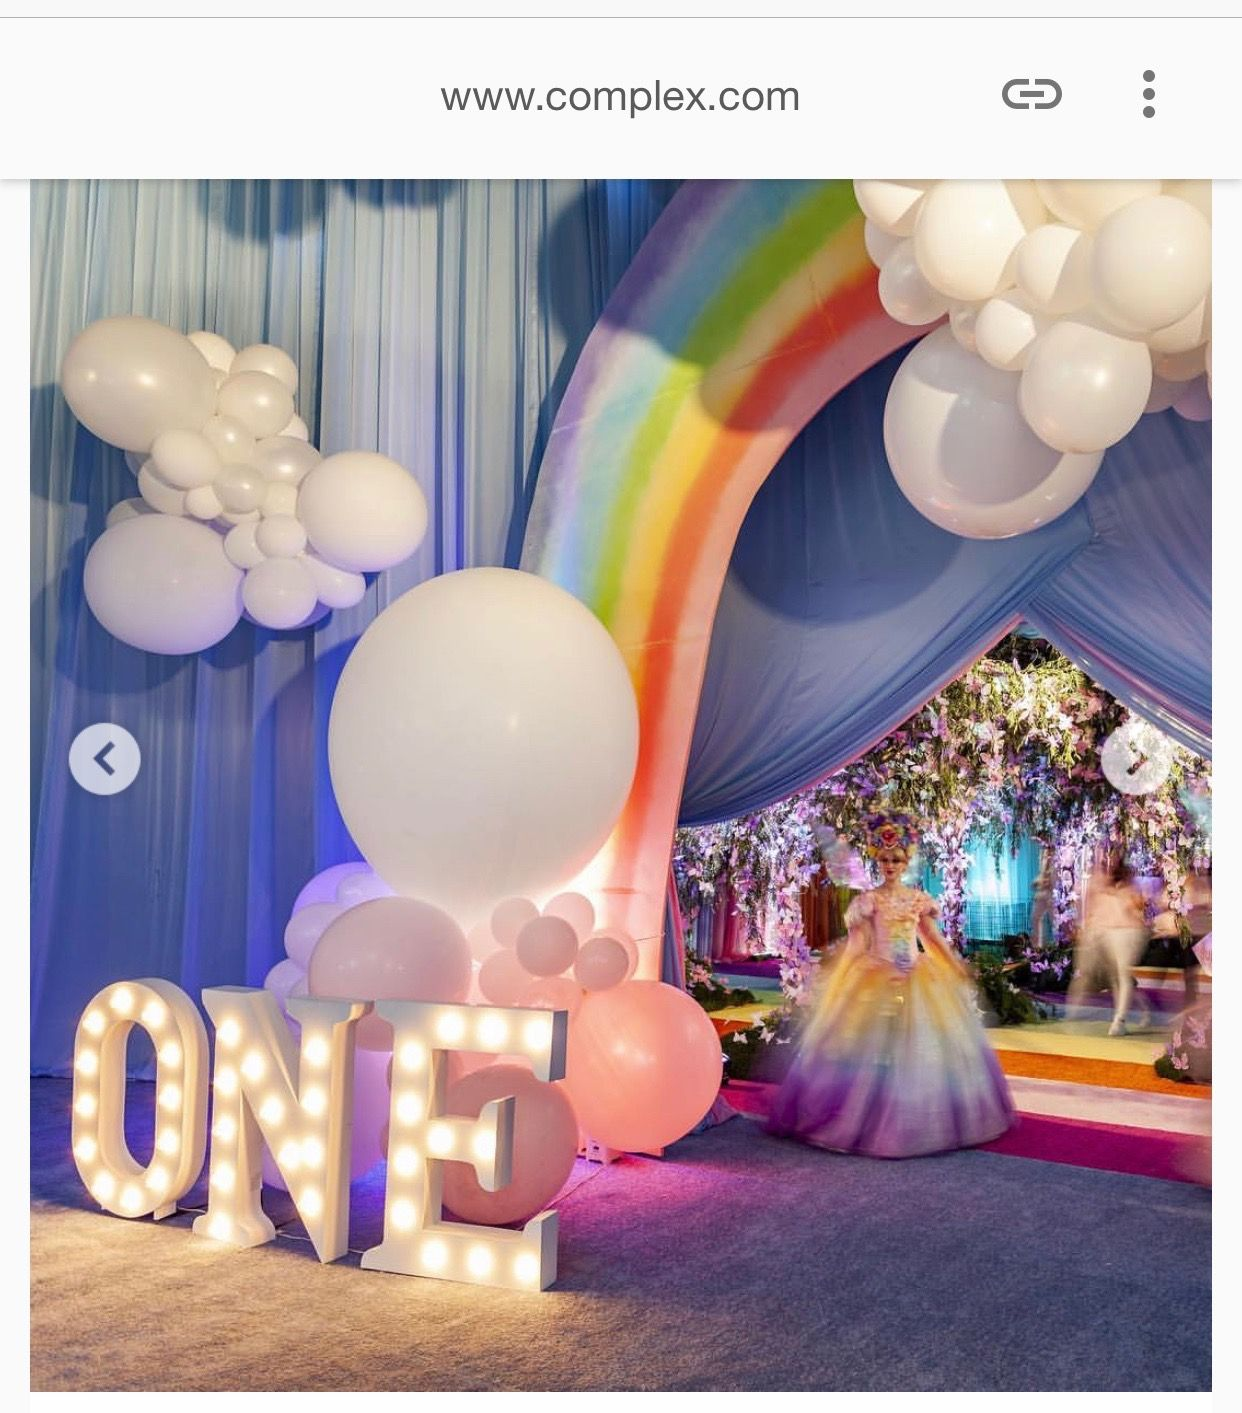 Stormiworld in 2020 Birthday, 1st birthday parties